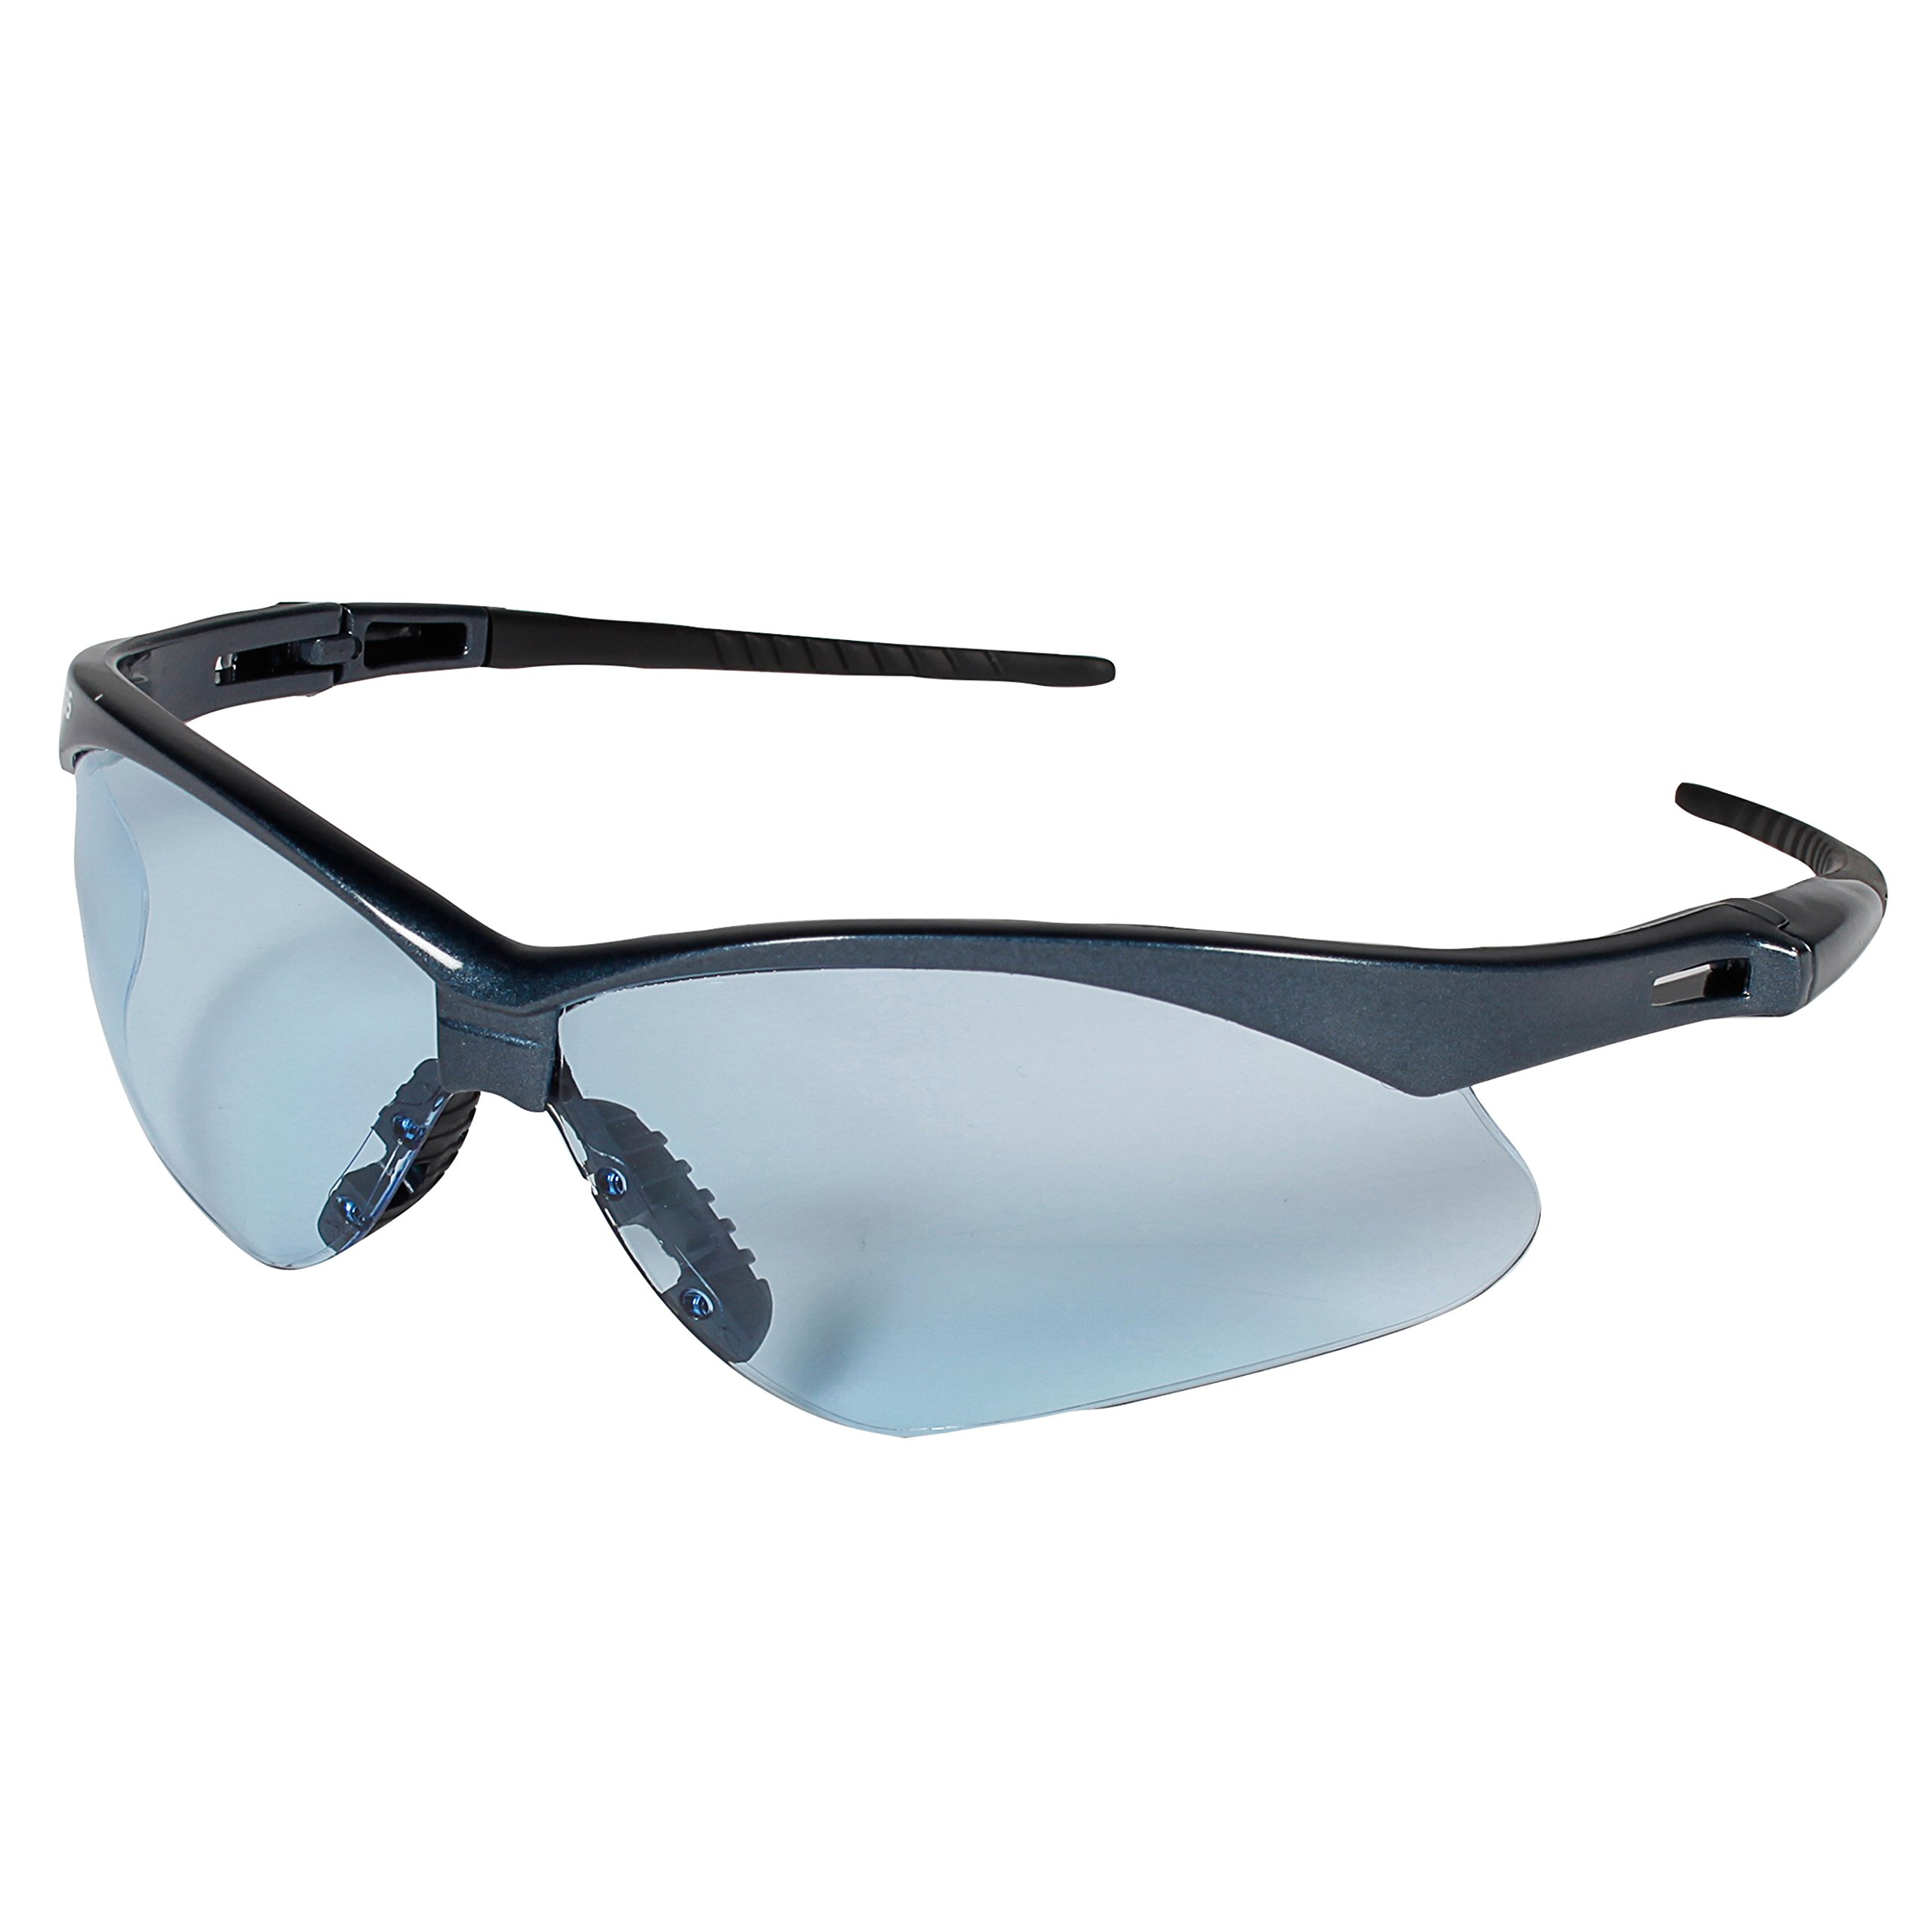 Jackson Safety V30 Nemesis Safety Glasses (19639), Light Blue Lenses with Blue Frame, 12 Pairs / Case by Jackson Safety (Image #5)